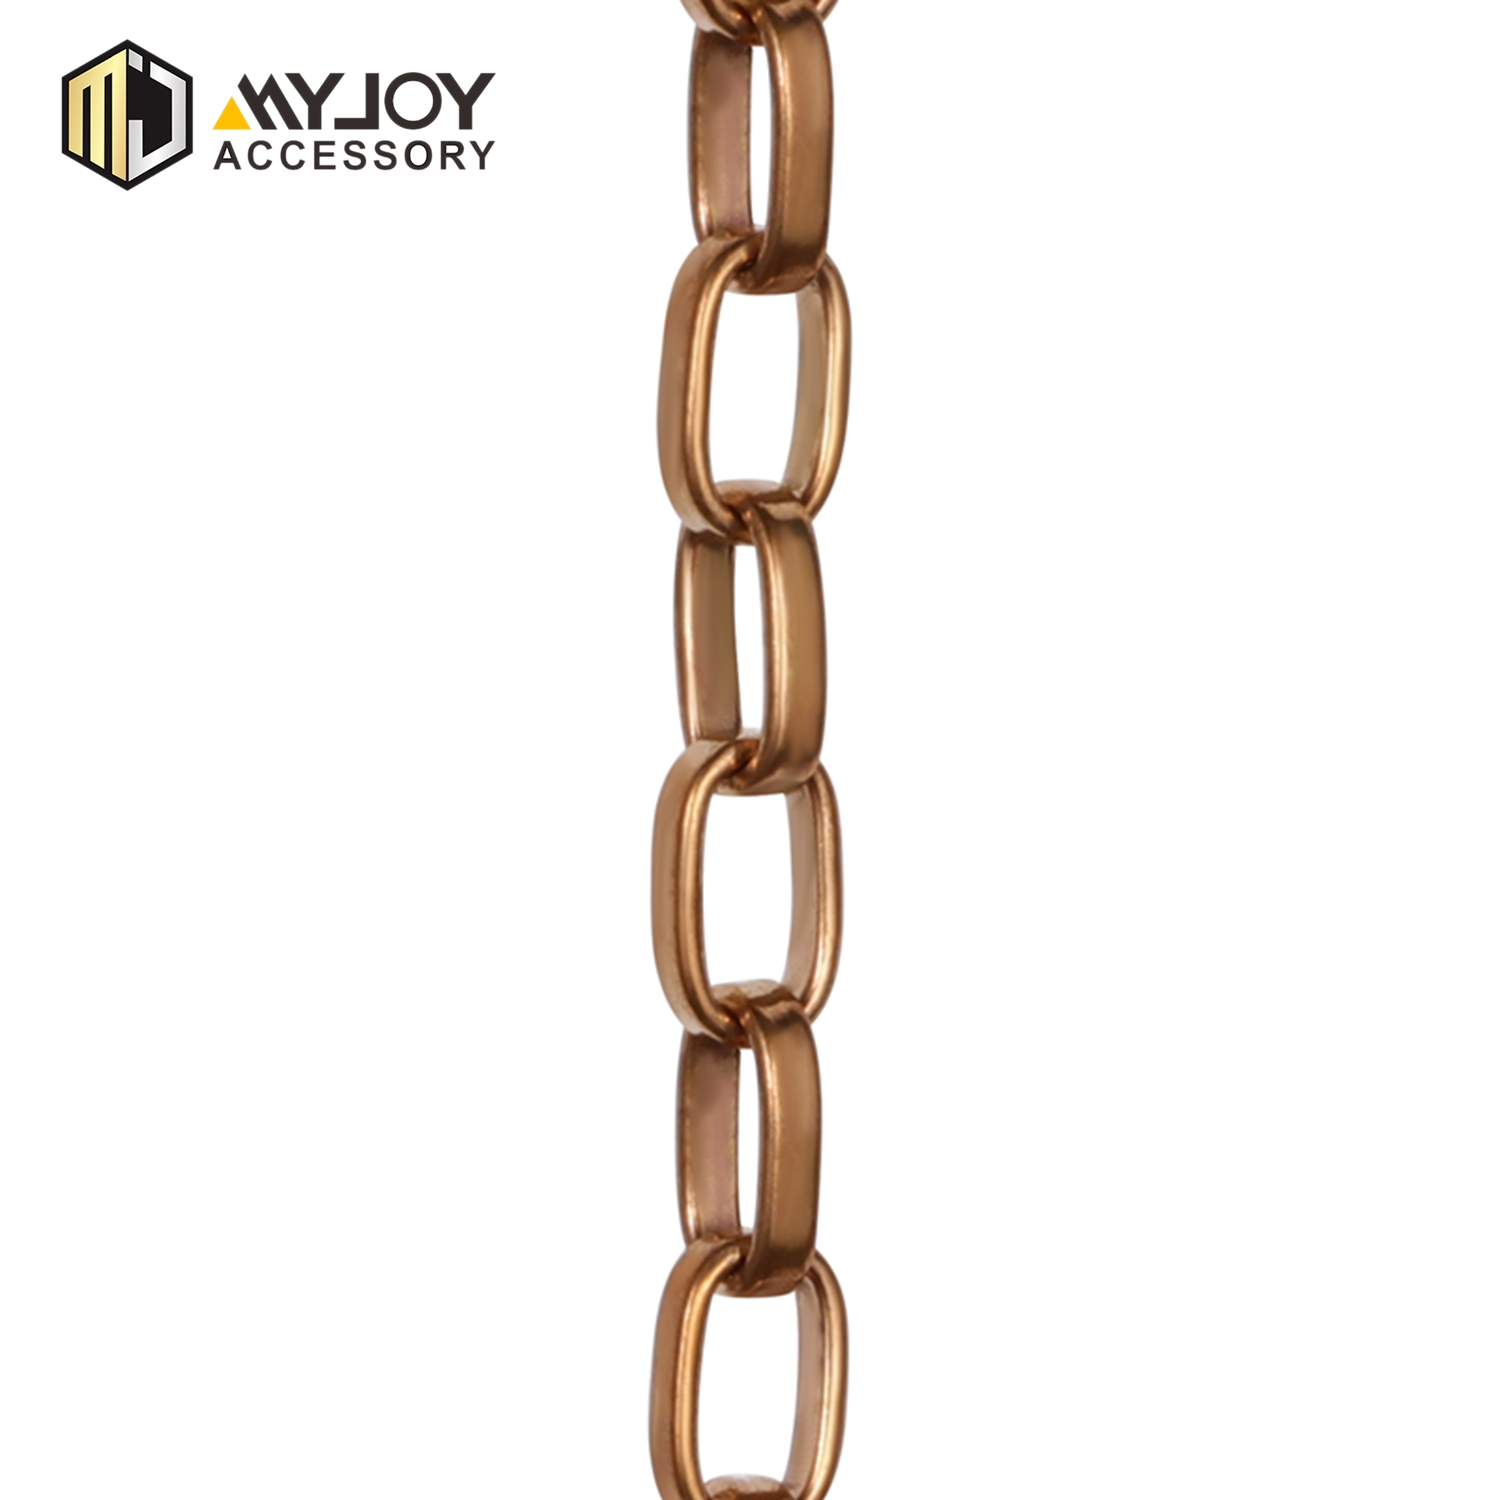 MYJOY High-quality handbag chain strap company for bags-1